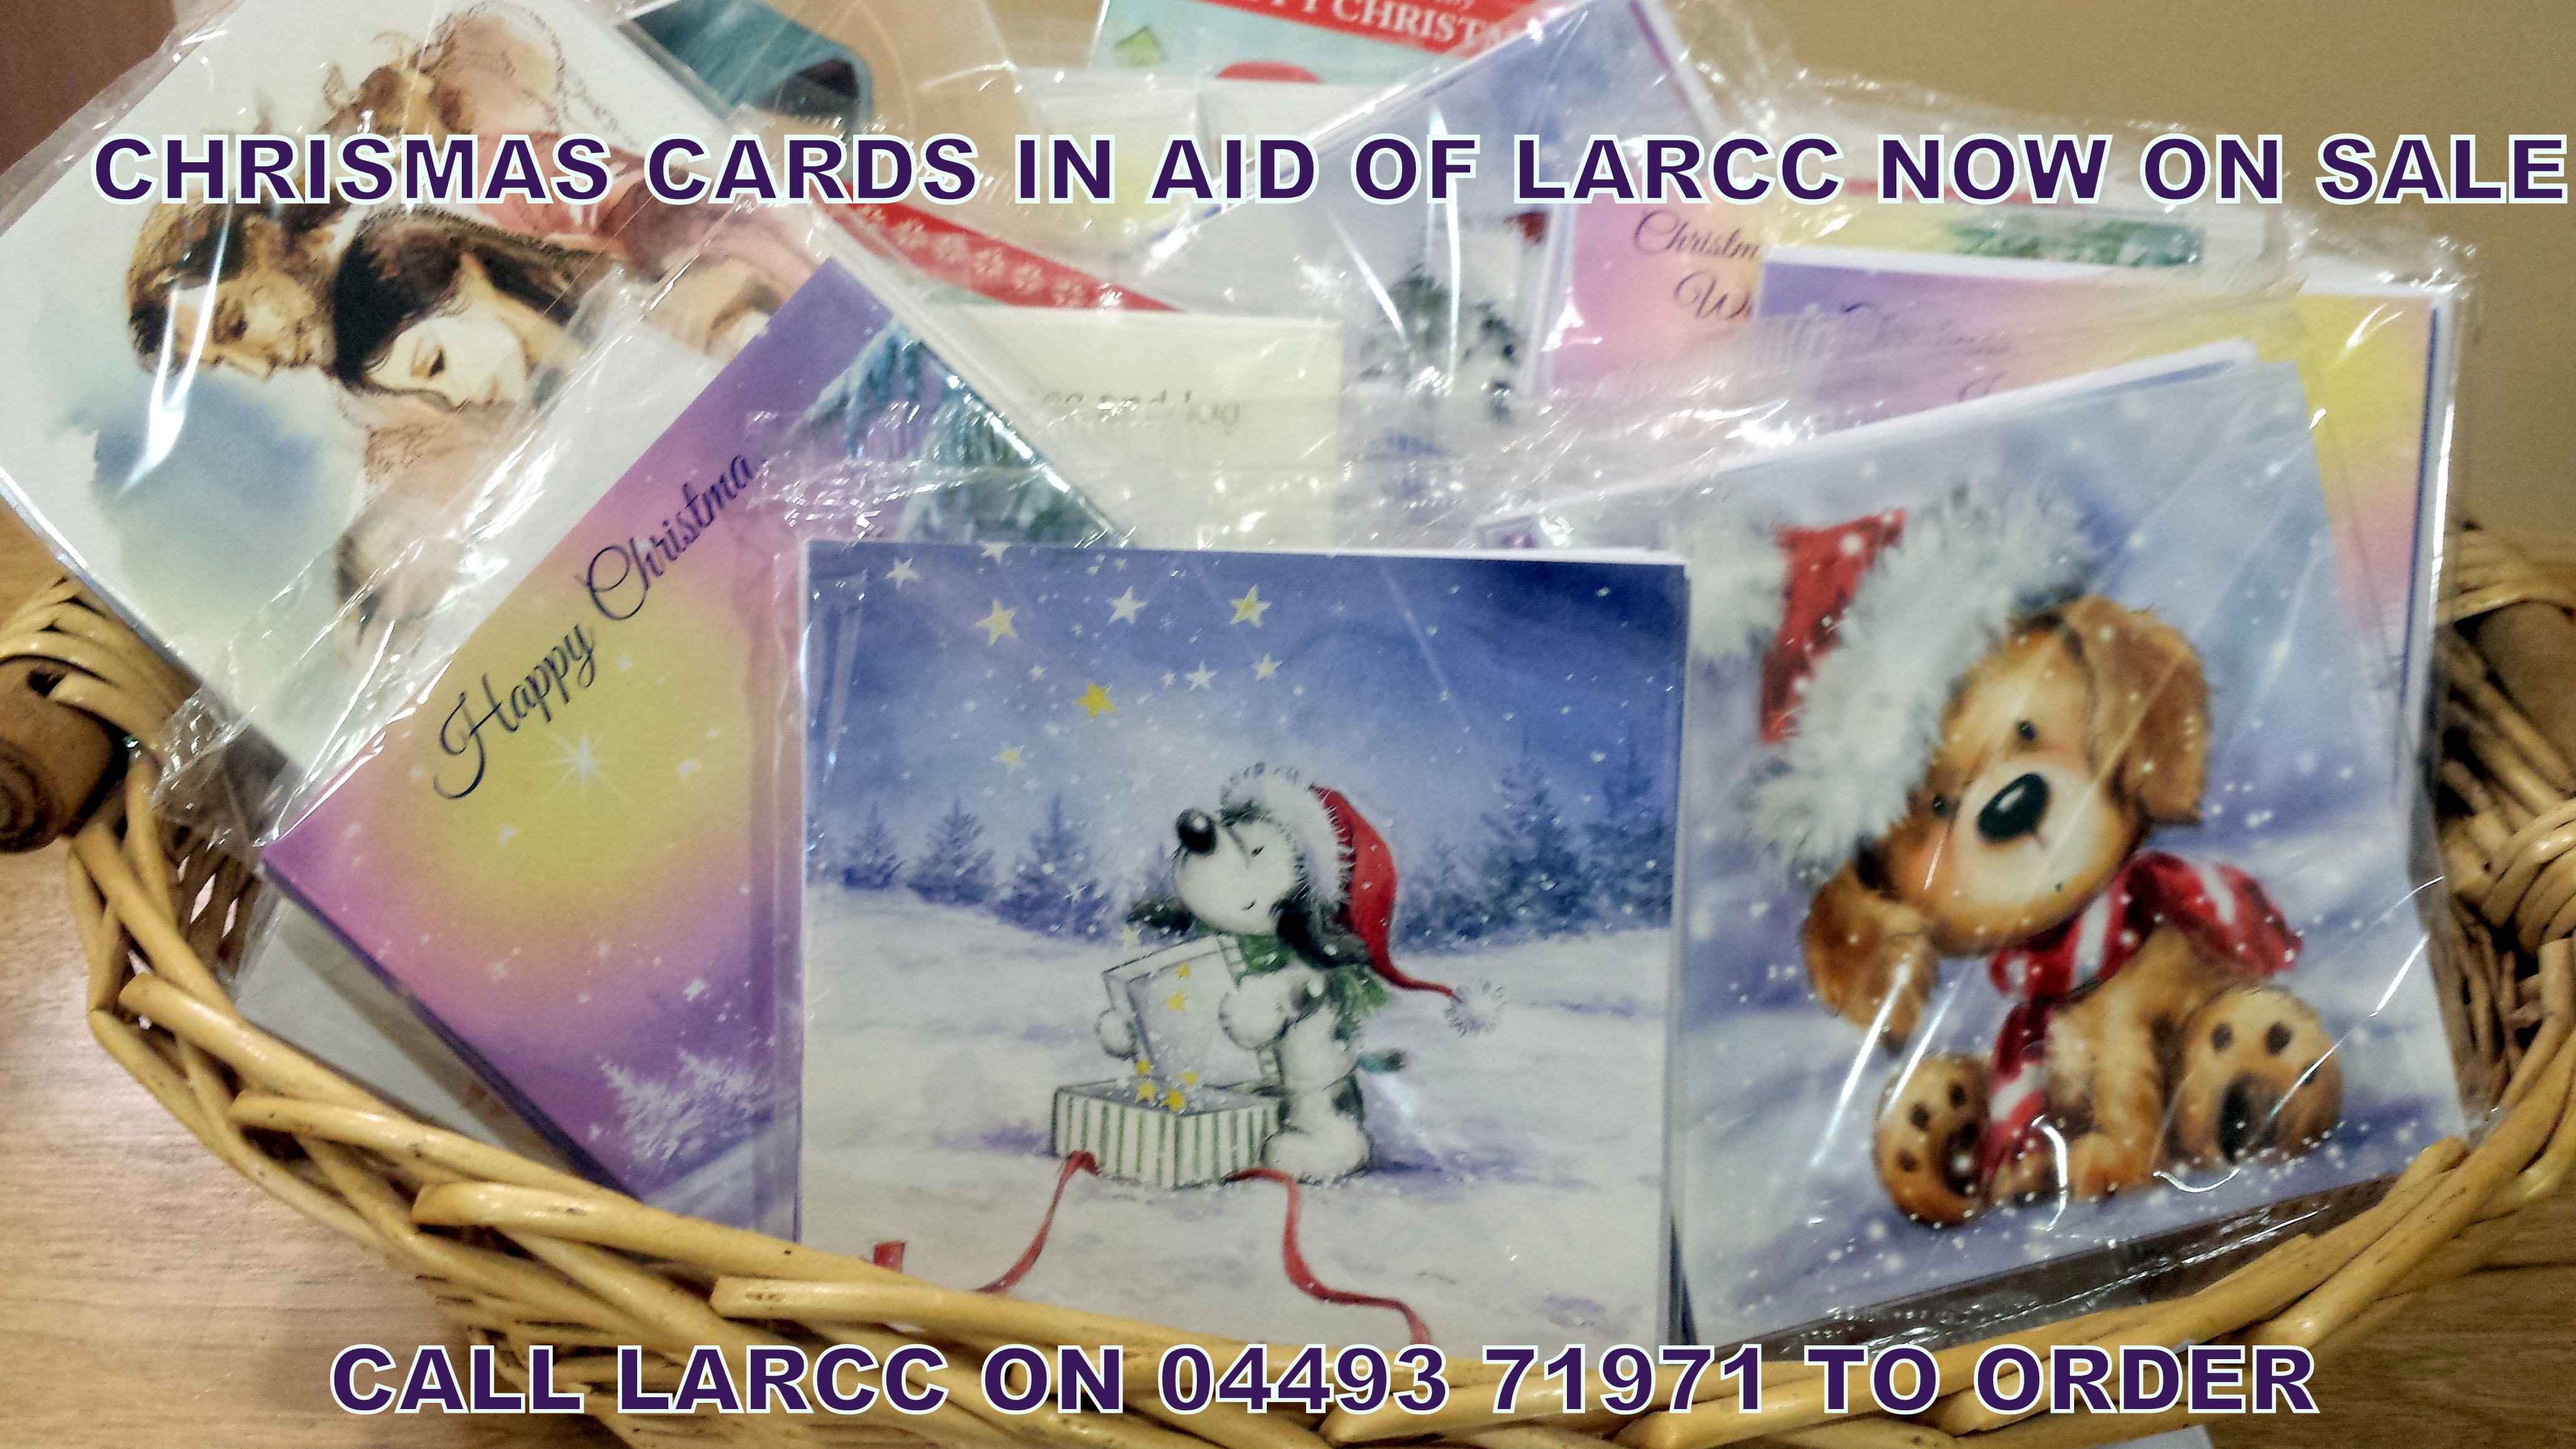 Christmas Cards now on Sale at LARCC - Cancer Support Centre